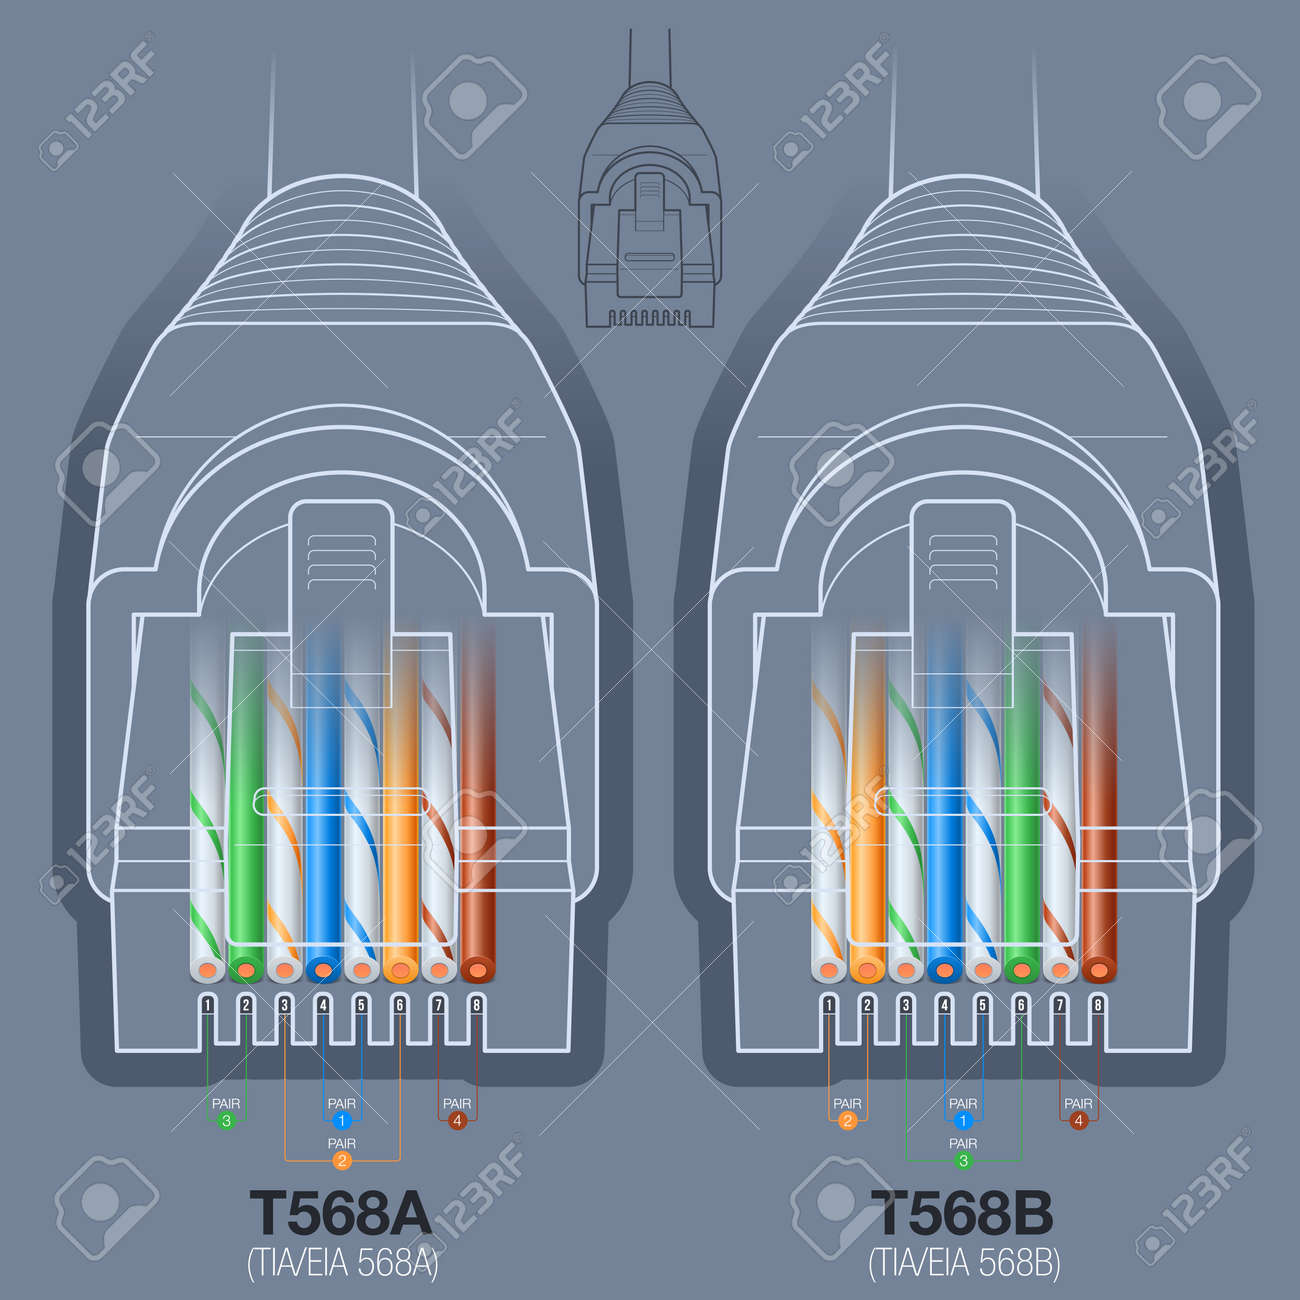 rj45 network cable connector t568a, t568b wiring diagram royaltyrj45 network cable connector t568a, t568b wiring diagram stock vector 45694360